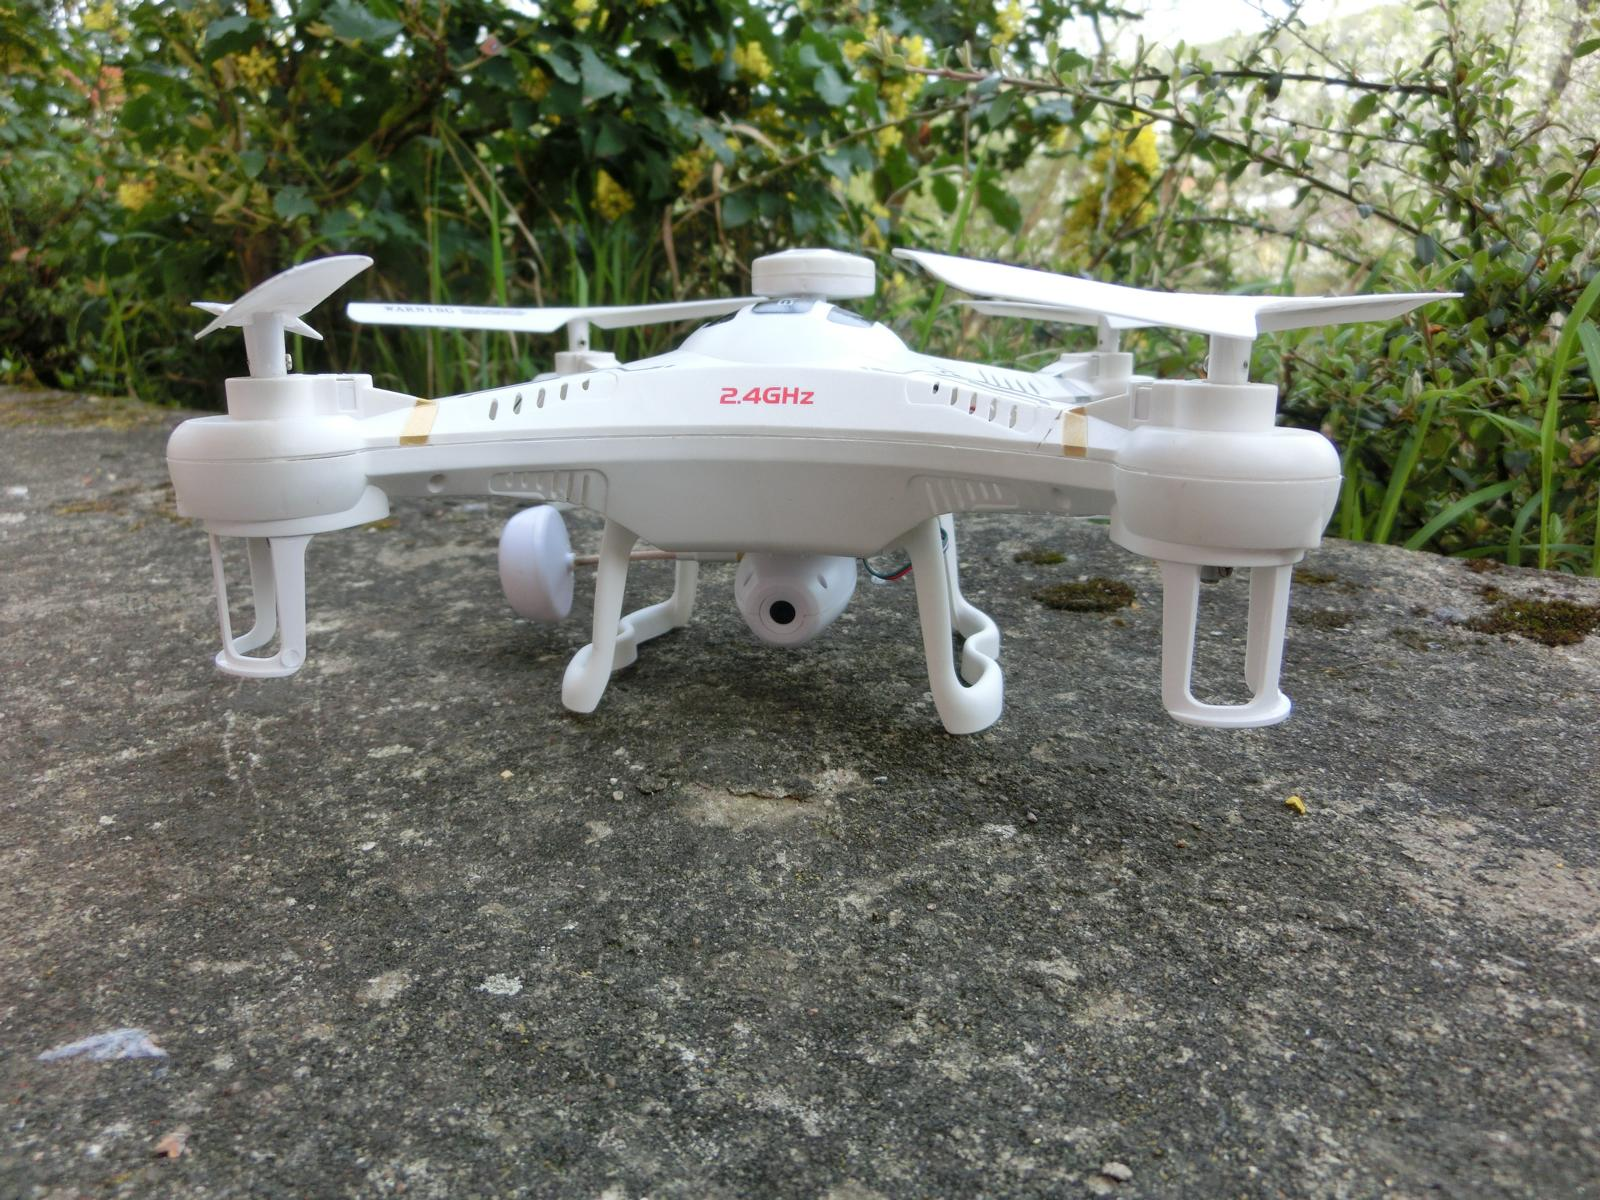 Xinlin X118 Quadcopter standing on the rock with plants in the background.